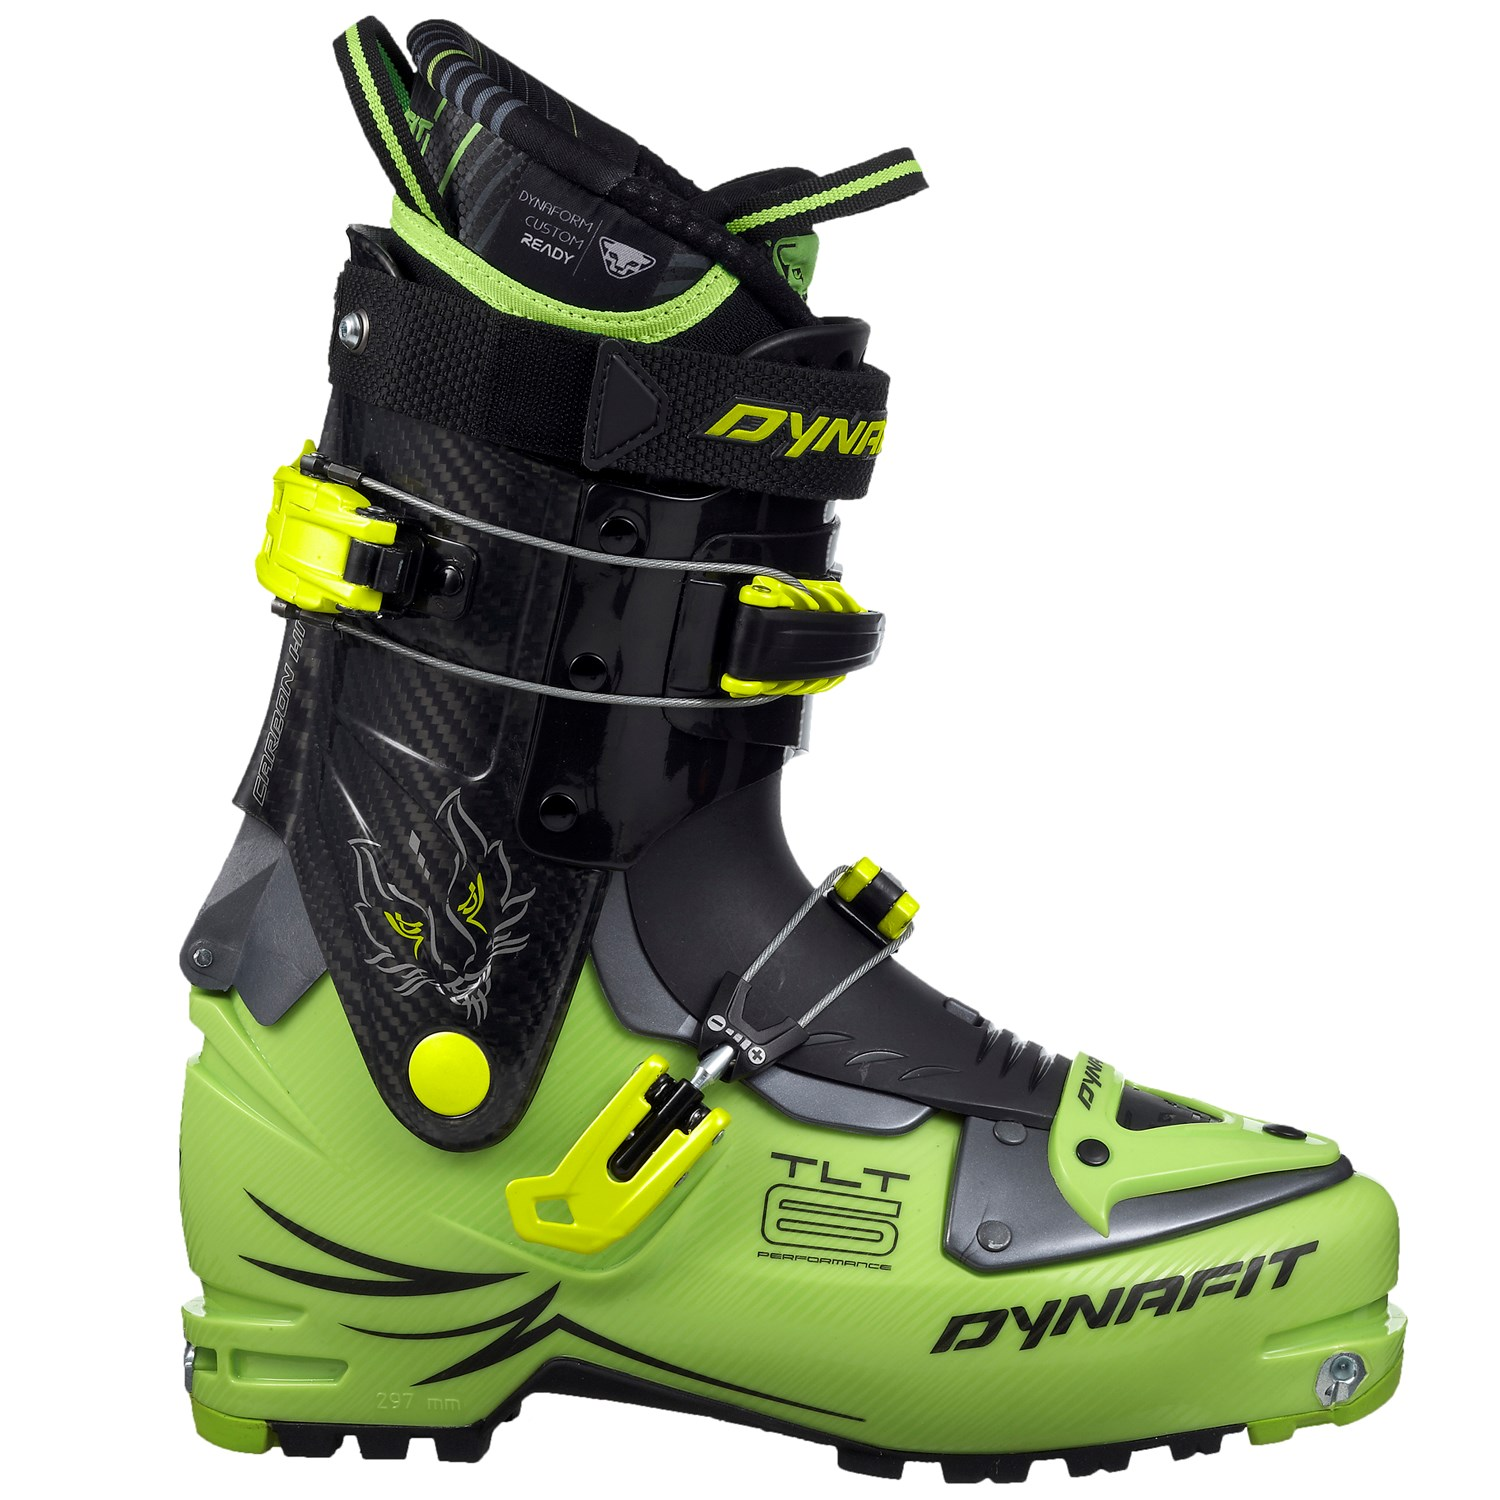 [for Sale] Ice Climbing, Skimo Gear And Clothing For Sale